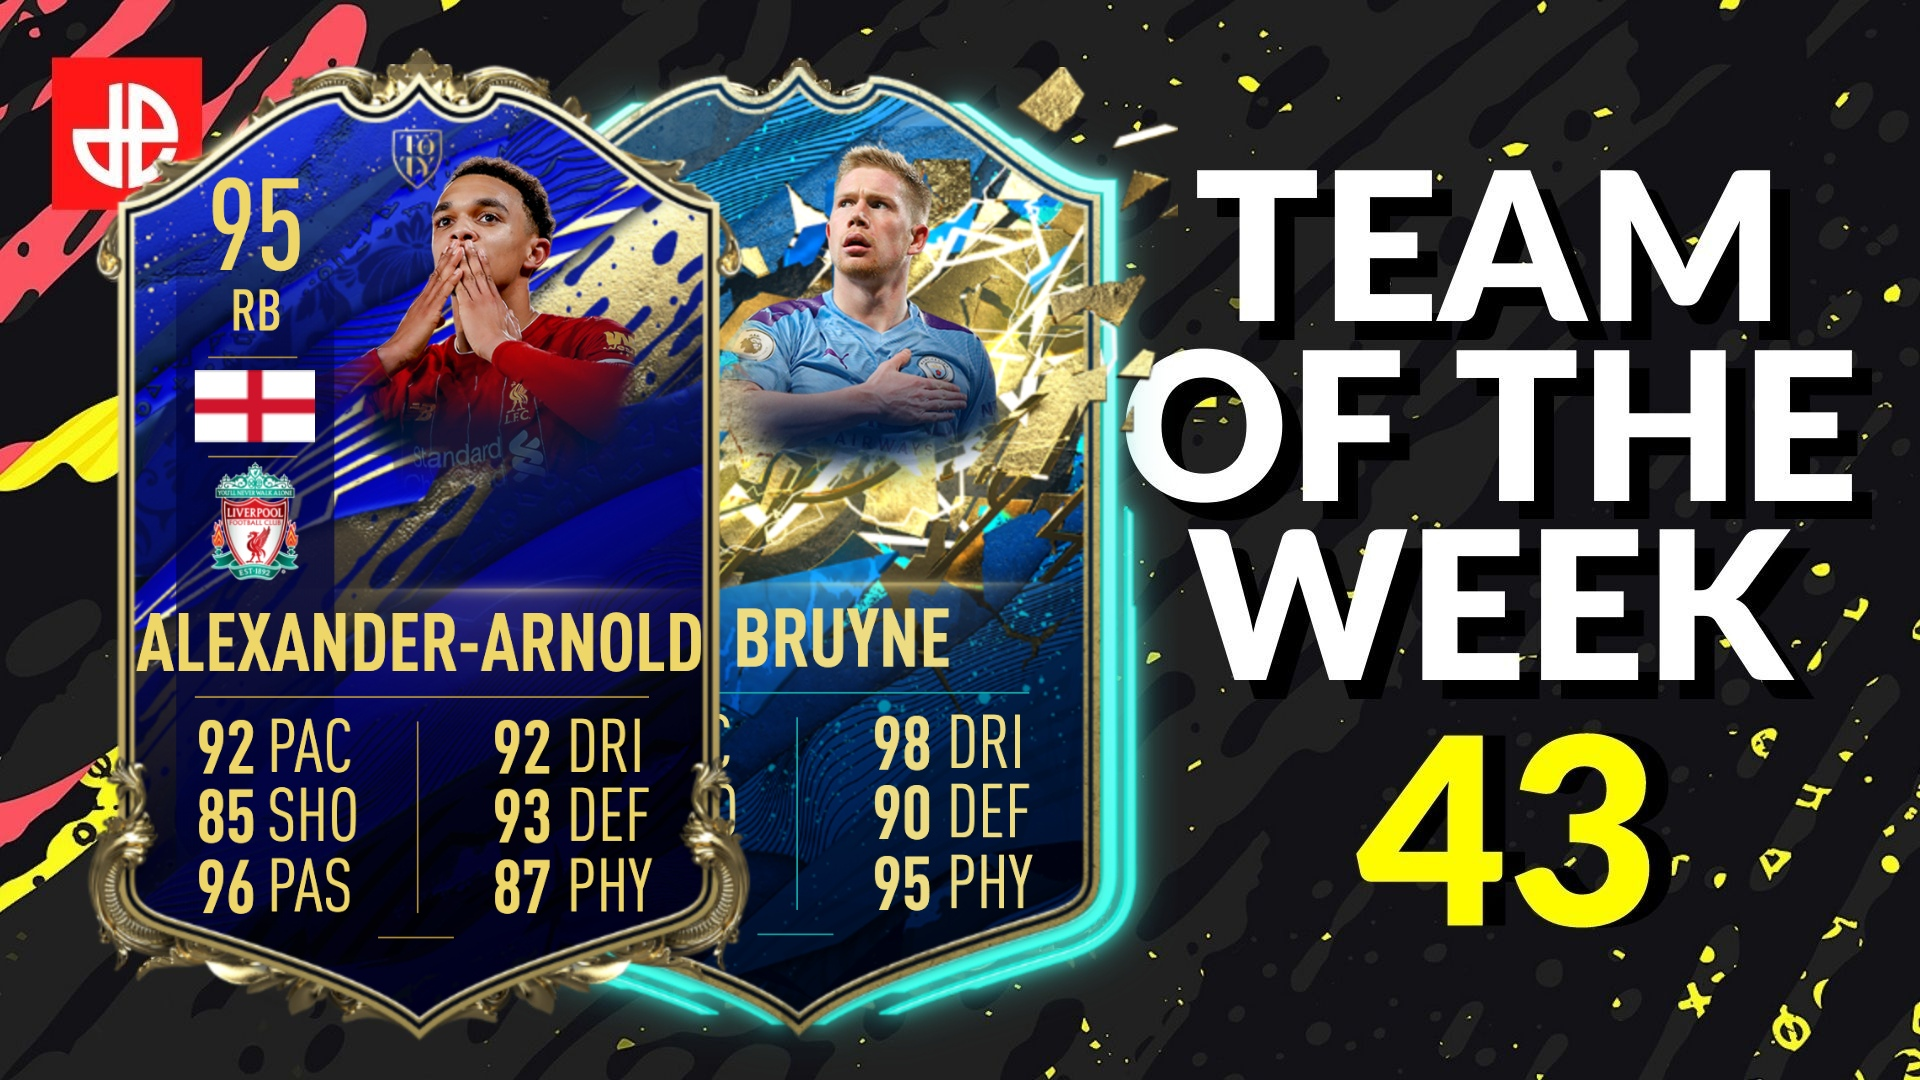 FIFA 20 Team of the Week 43